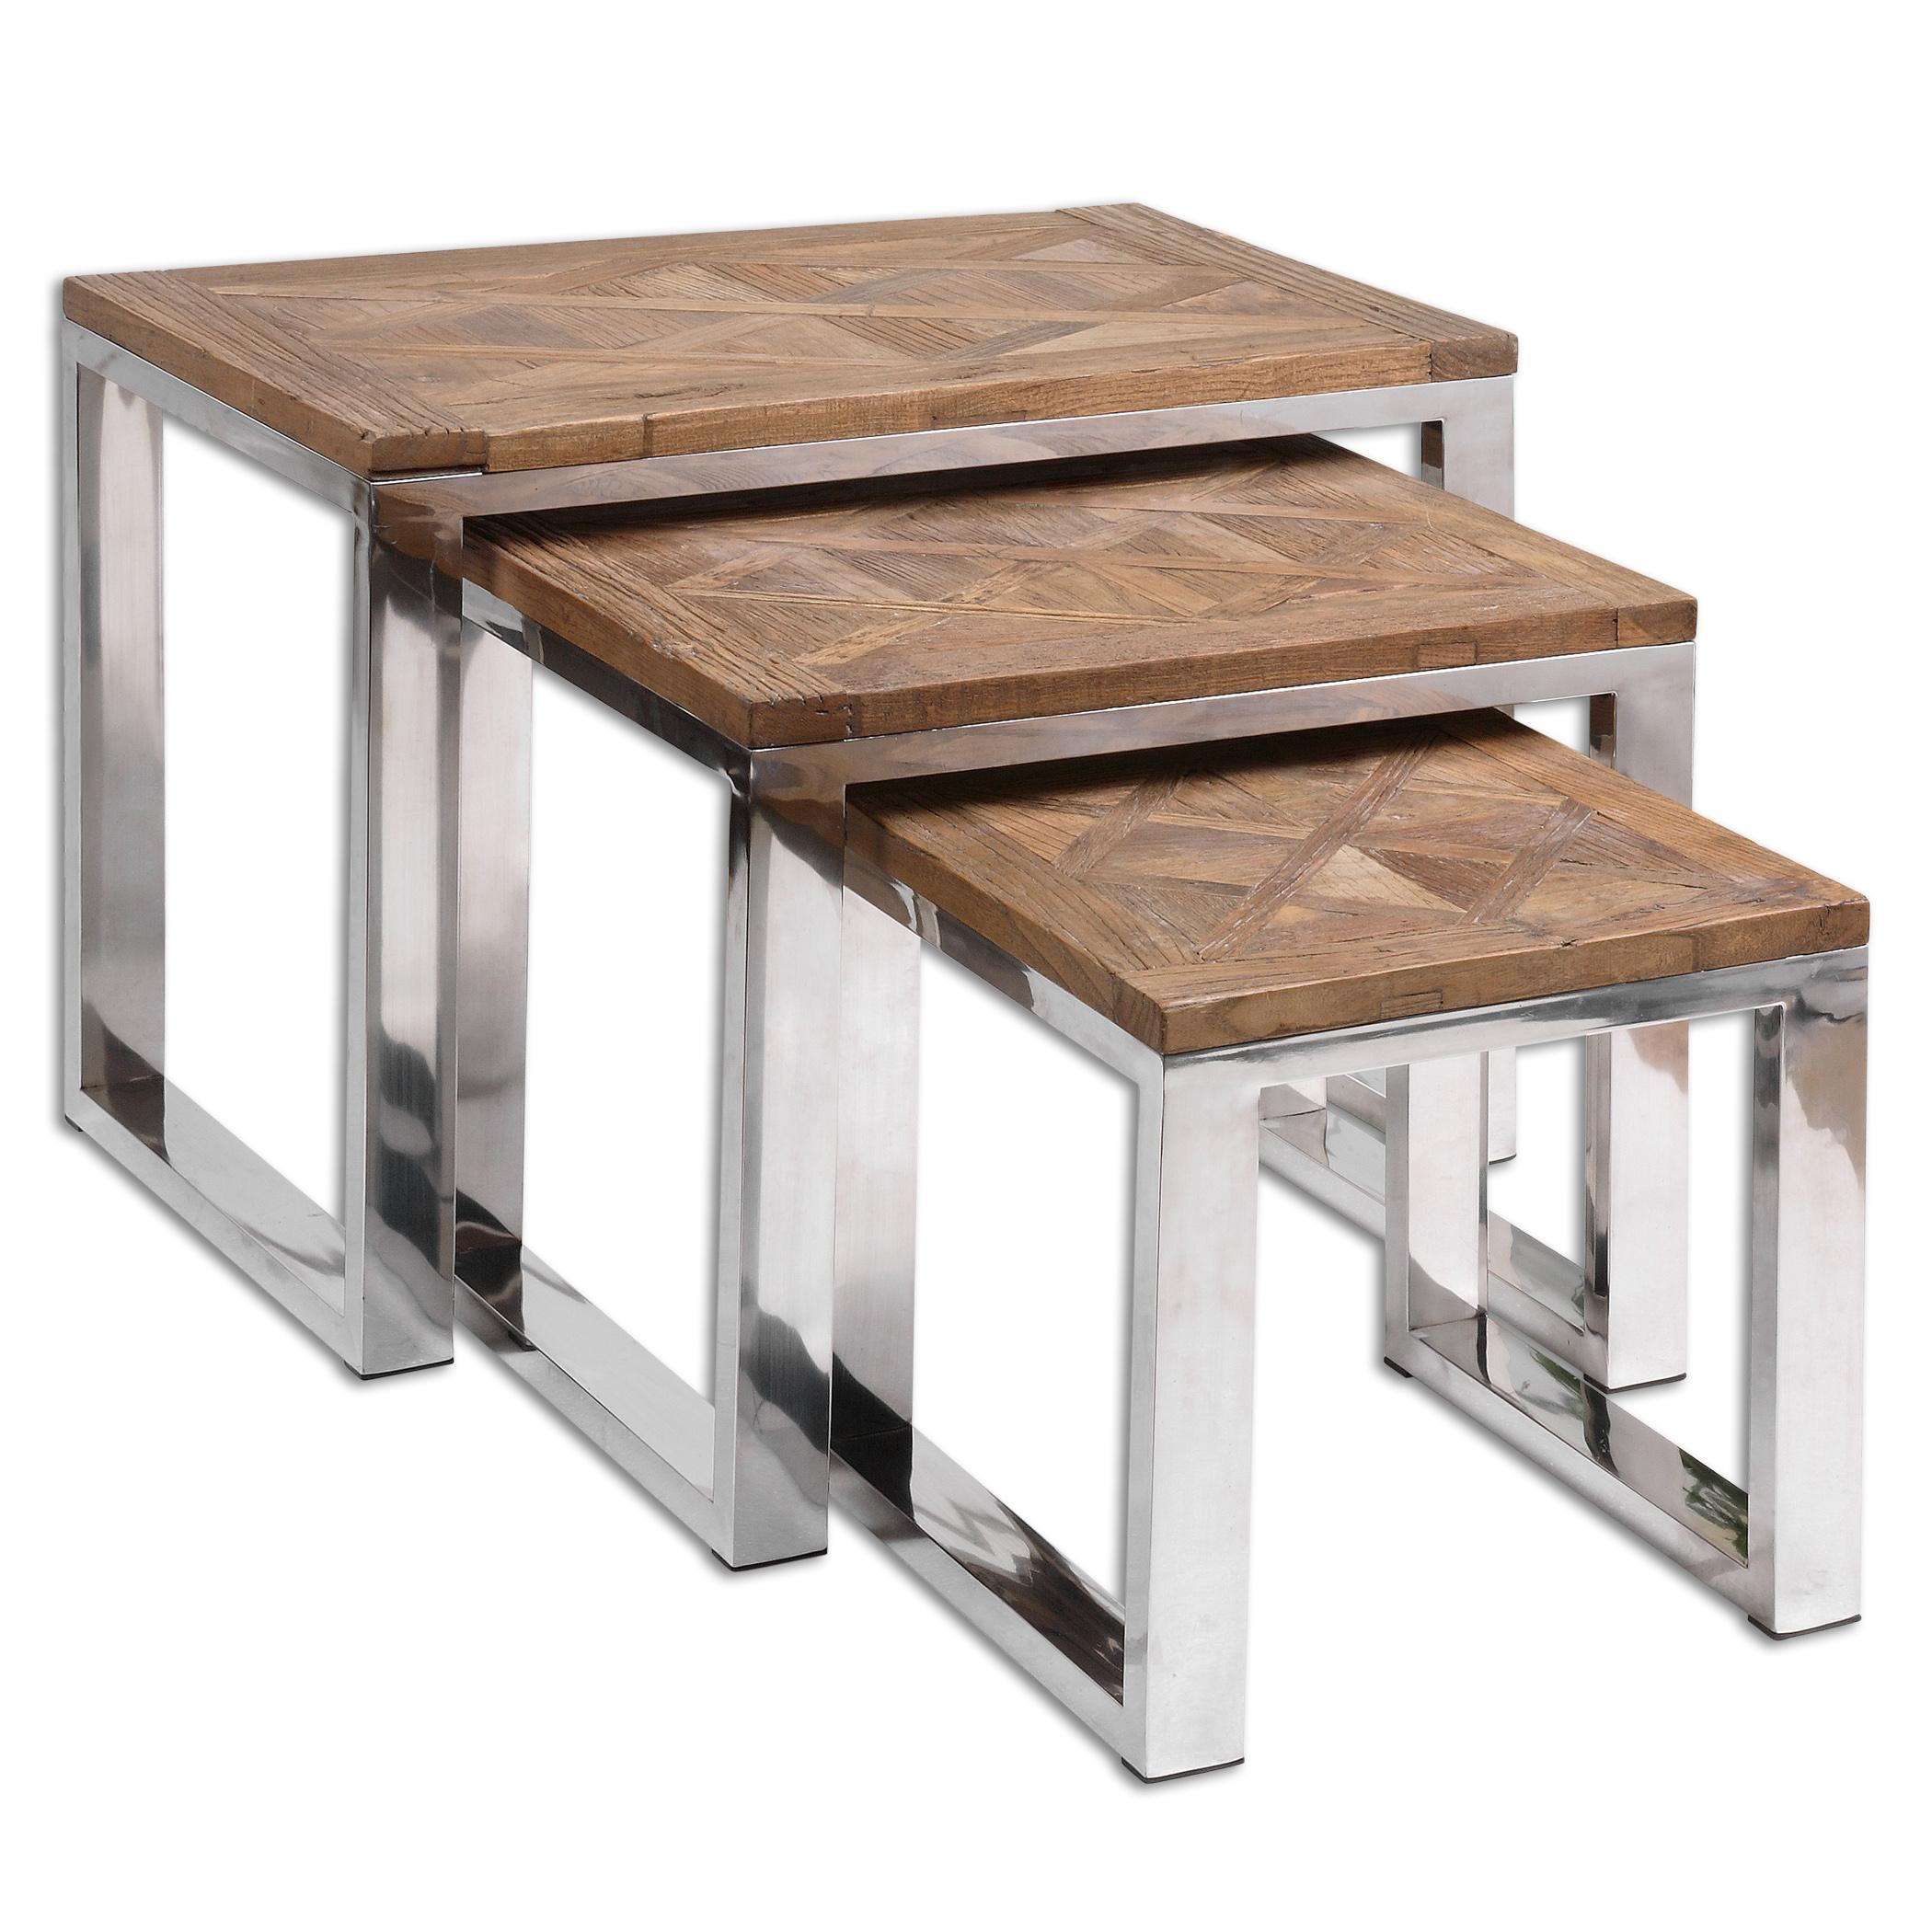 Uttermost Accent Furniture Hesperos Nesting Tables - Item Number: 24416